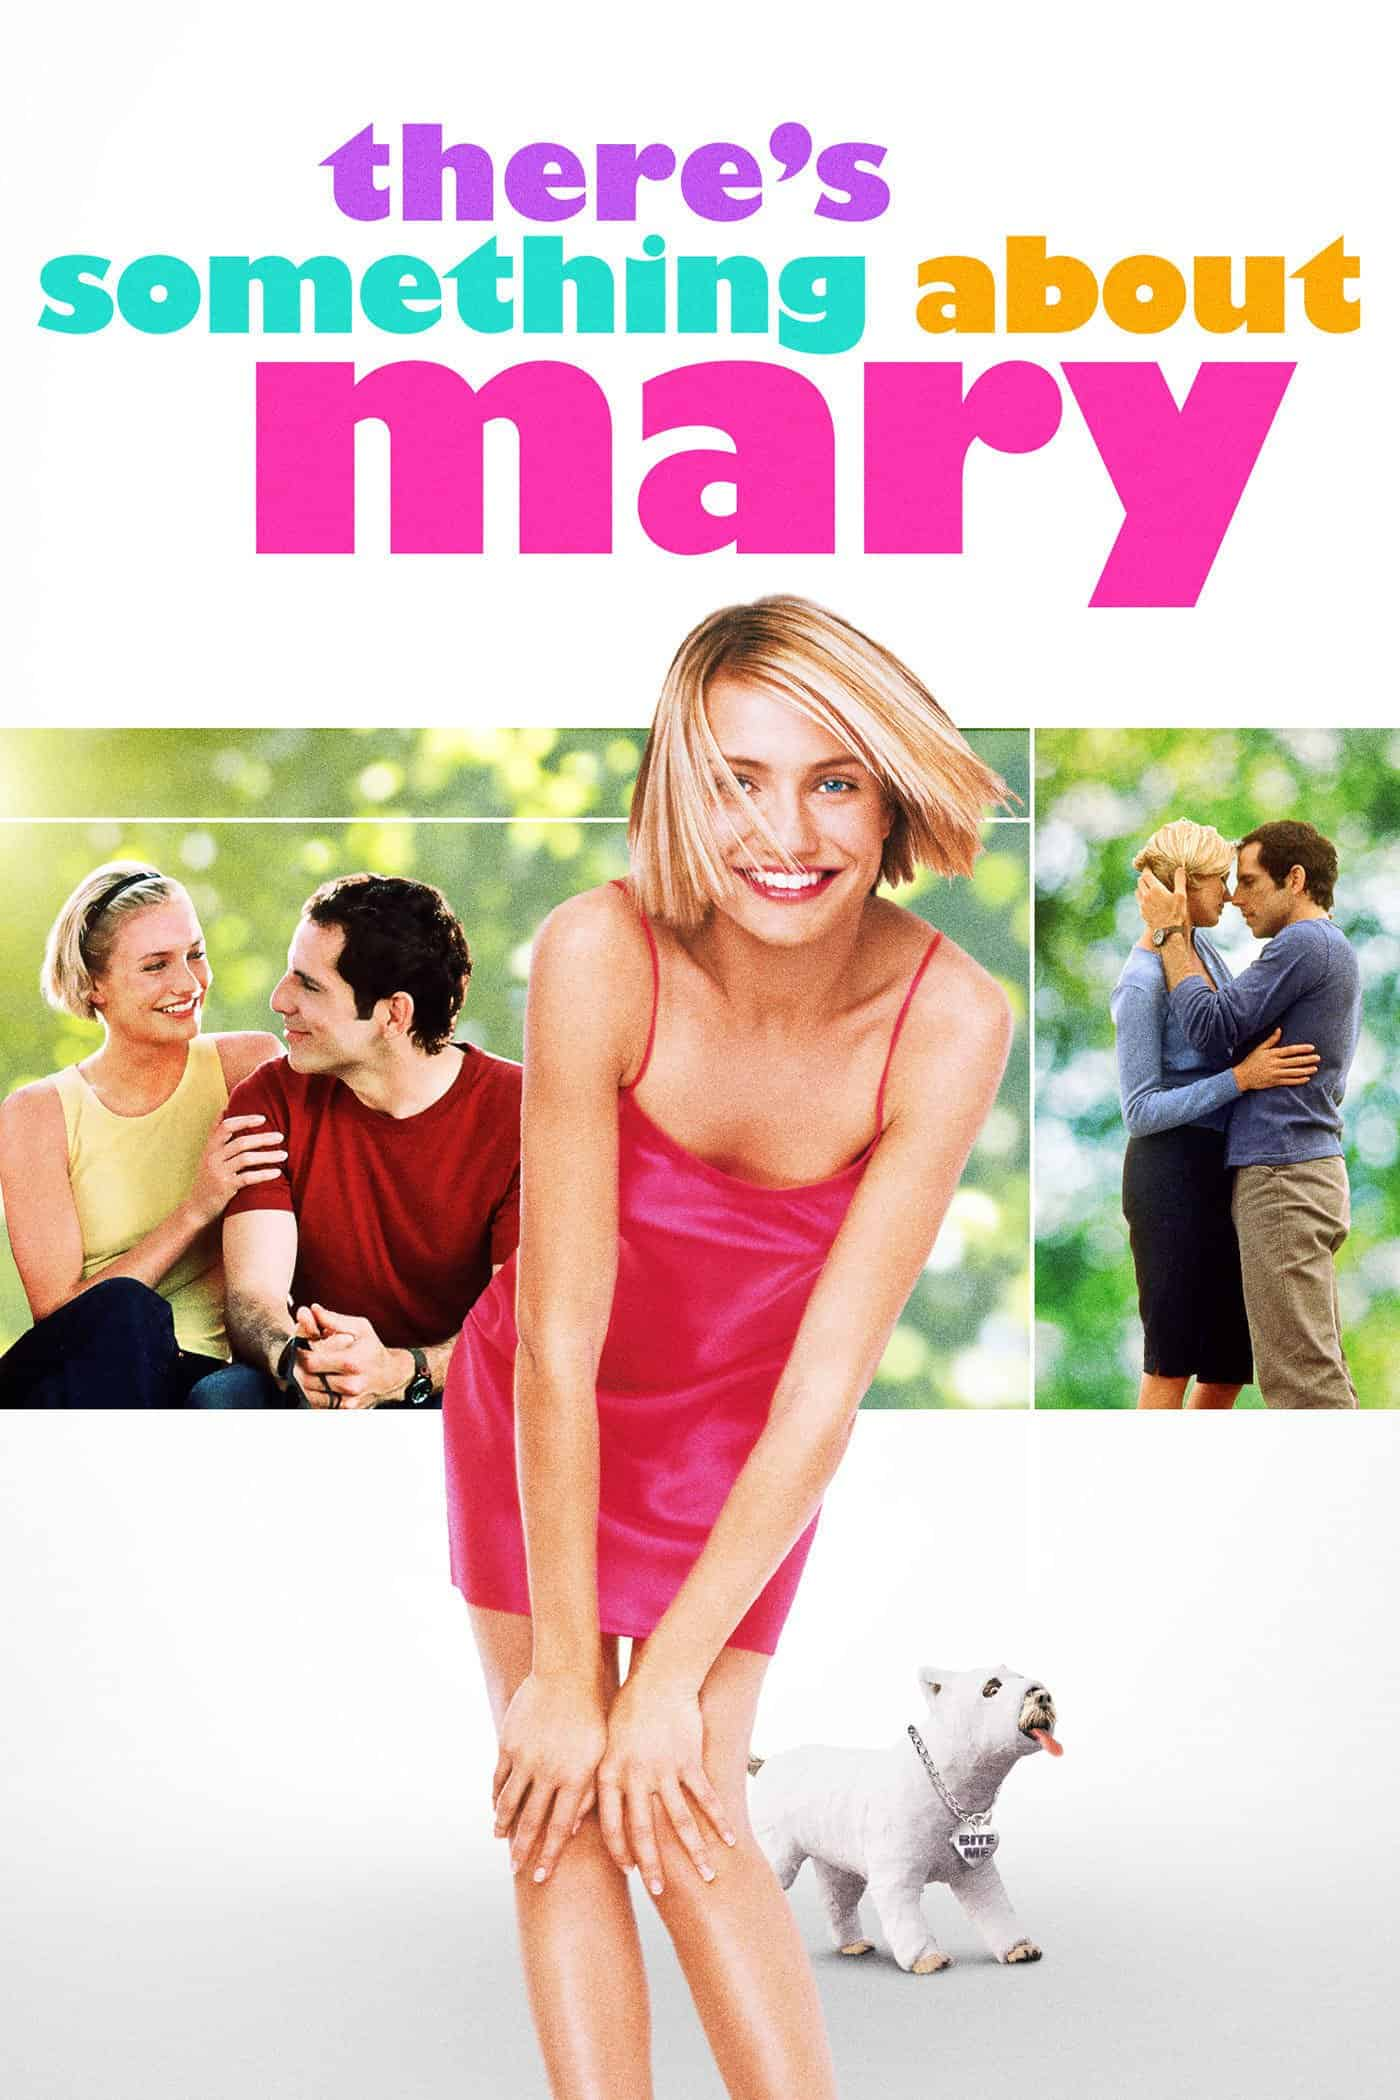 There's Something About Mary, 1998